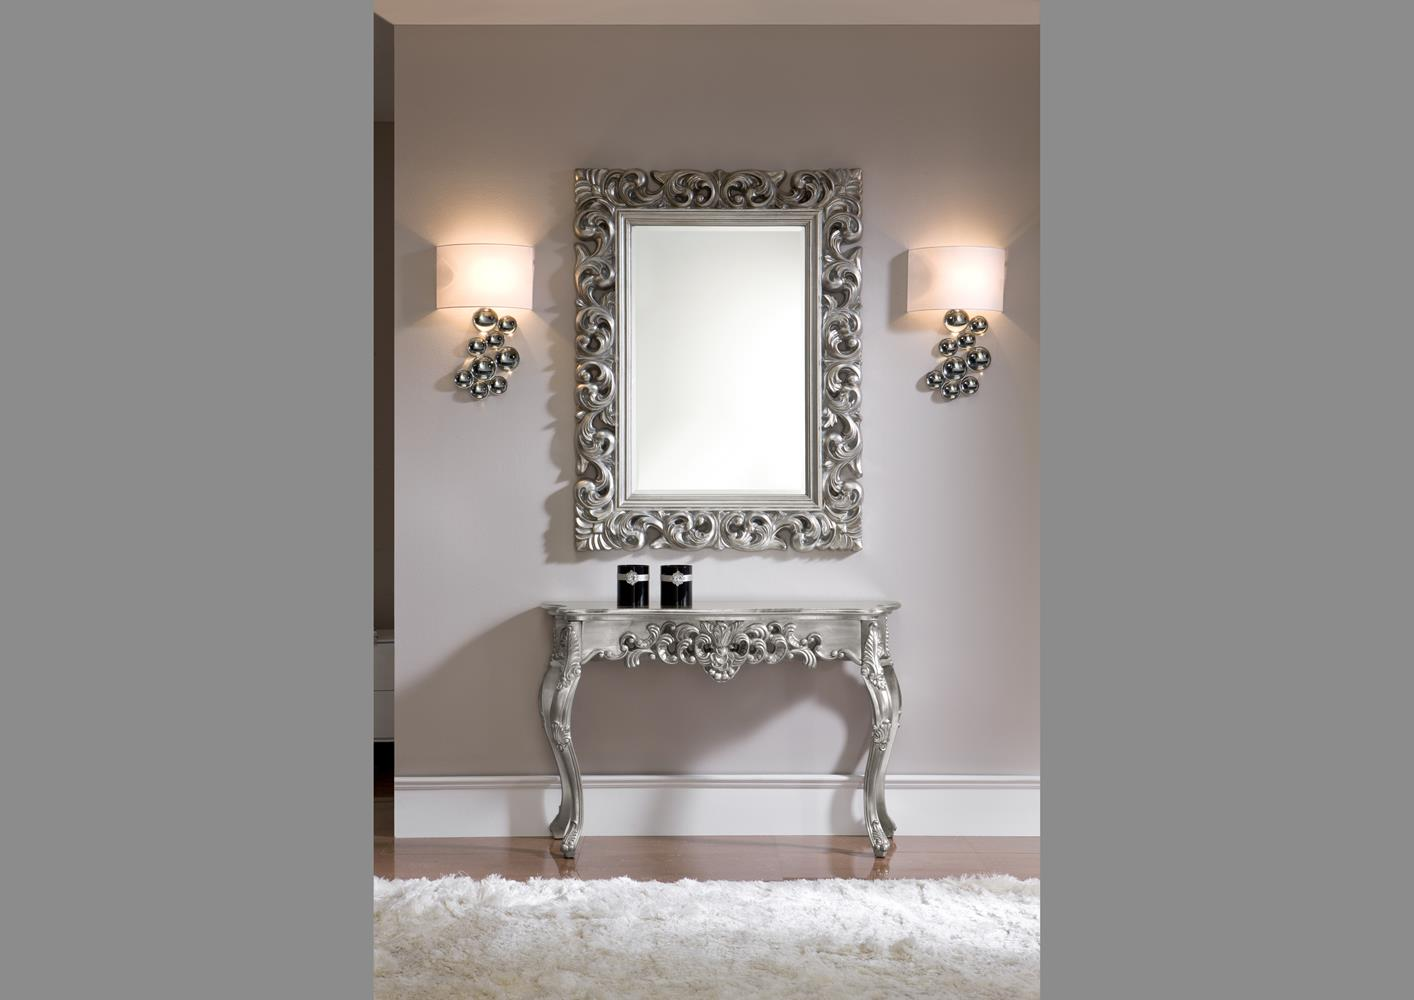 acheter votre miroir original or style baroque chez simeuble. Black Bedroom Furniture Sets. Home Design Ideas